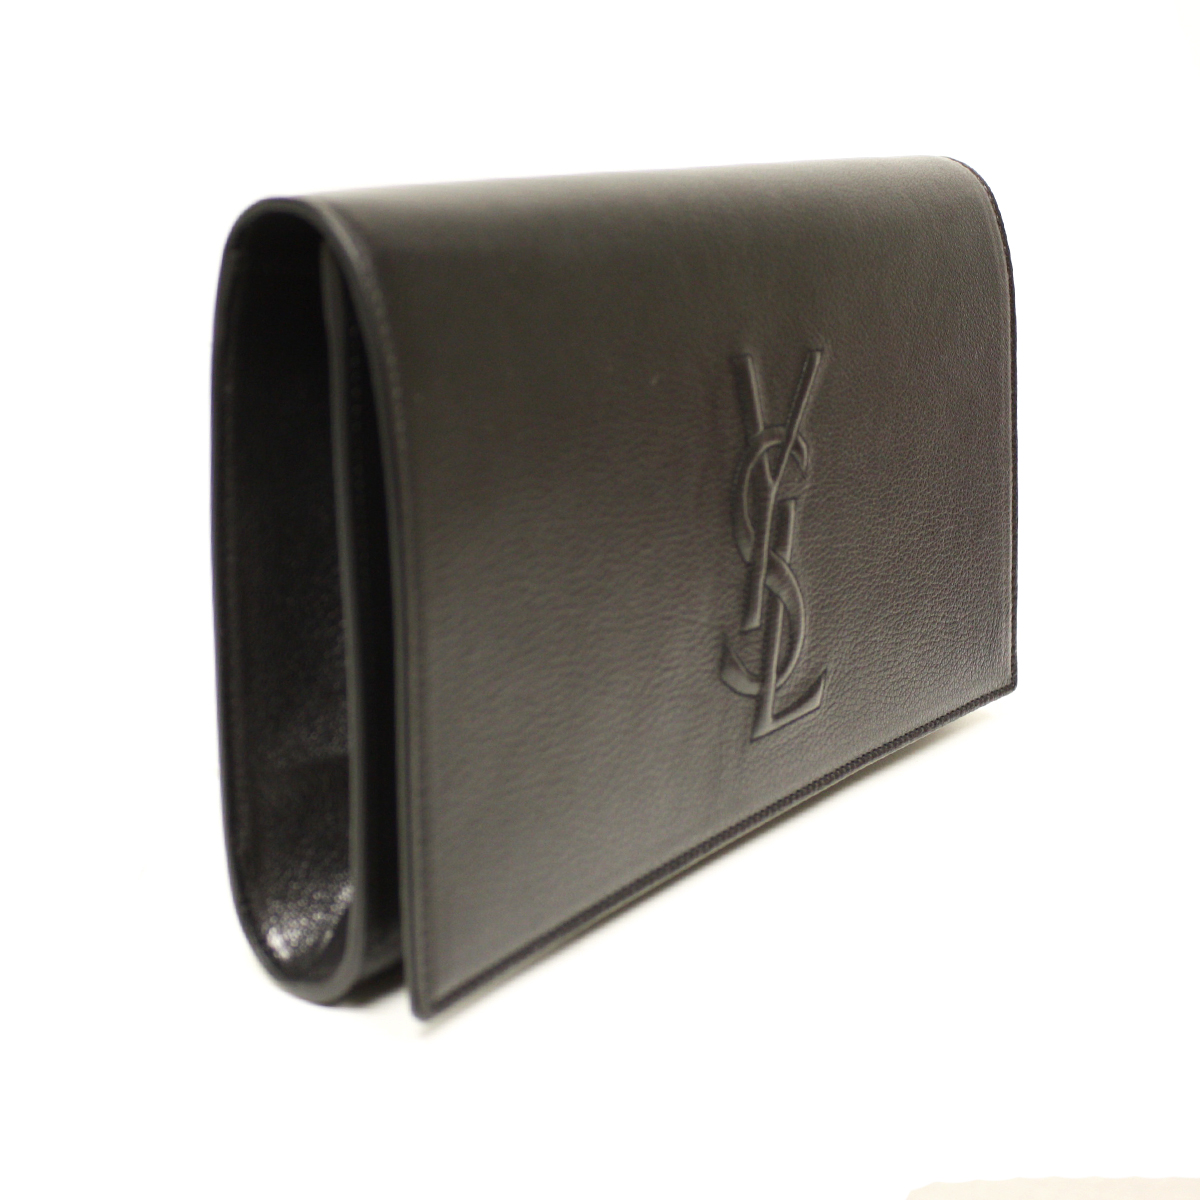 ysl cassandre clutch replica - YSL Belle de Jour Black Leather Large Clutch Bag 361120|Queen Bee ...